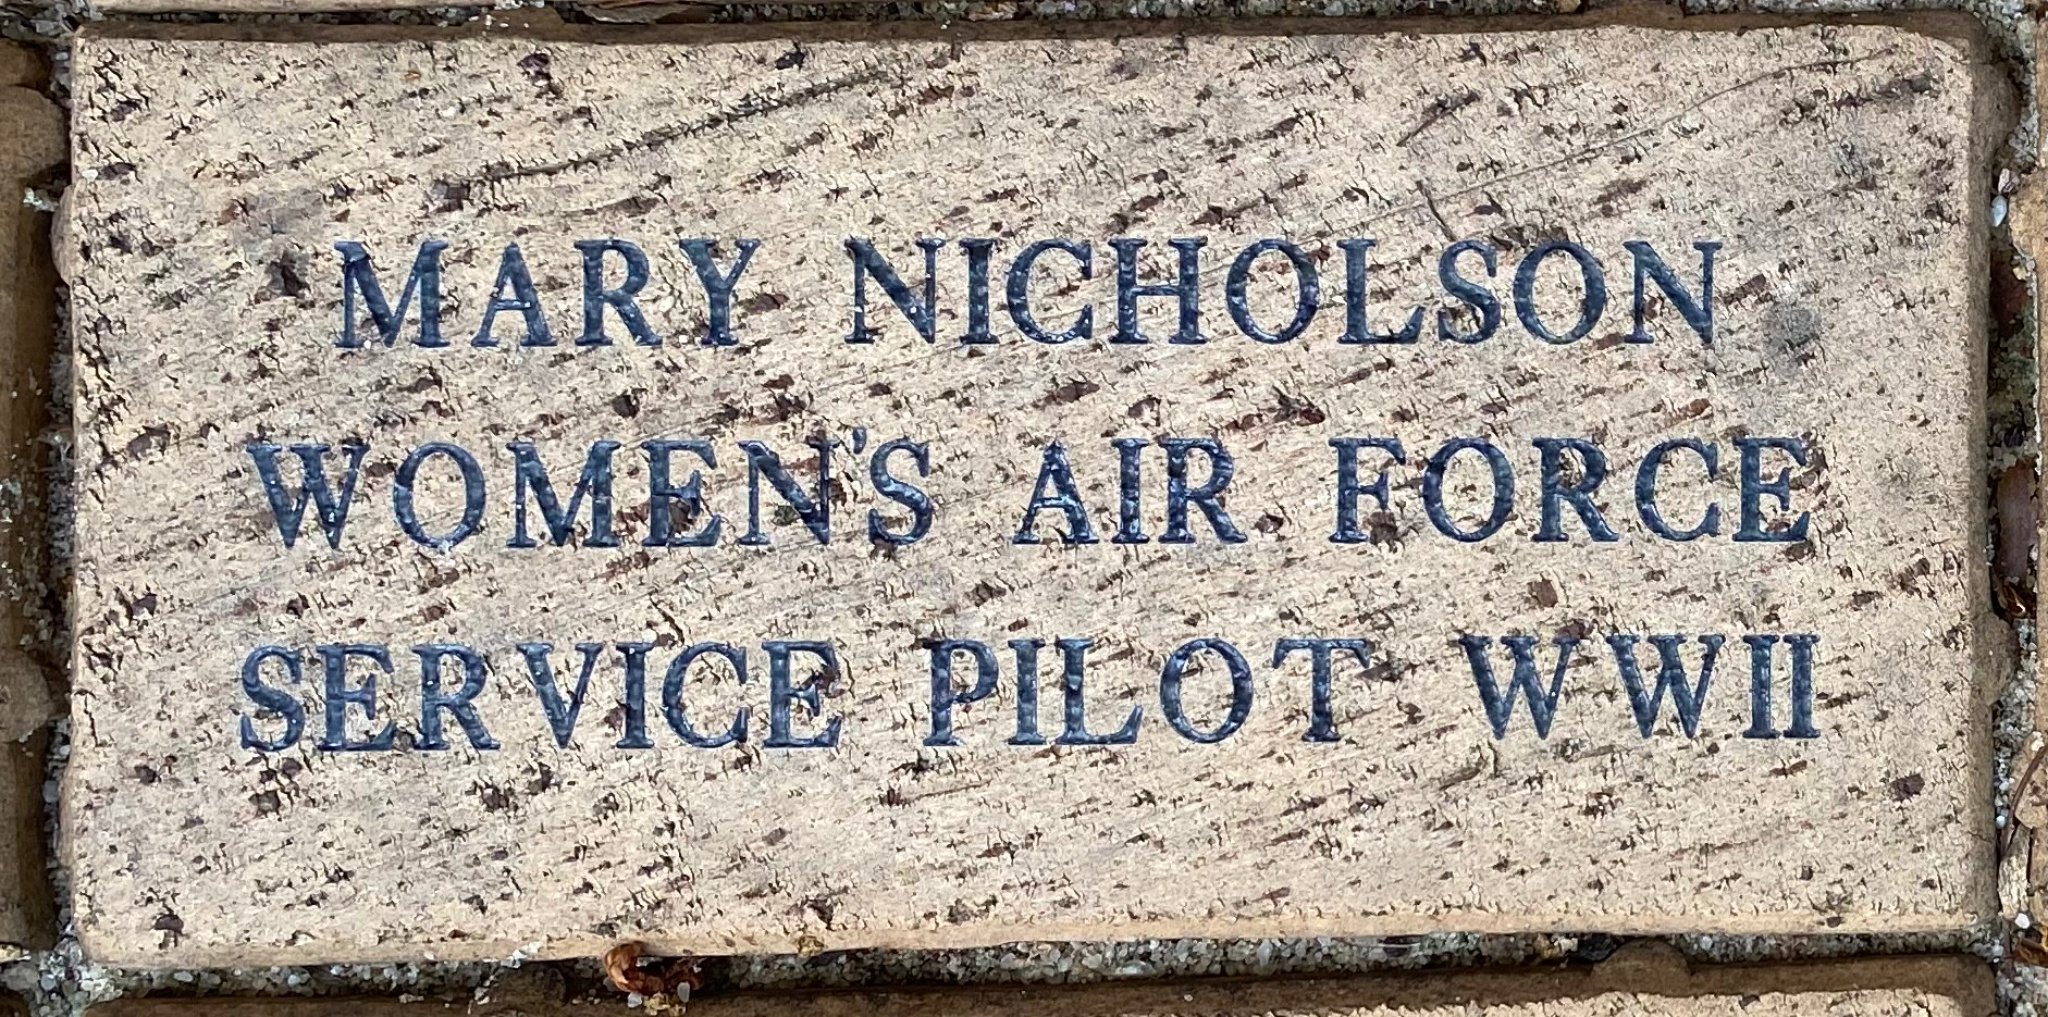 MARY NICHOLSON WOMEN'S AIR FORCE SERVICE PILOT WWII